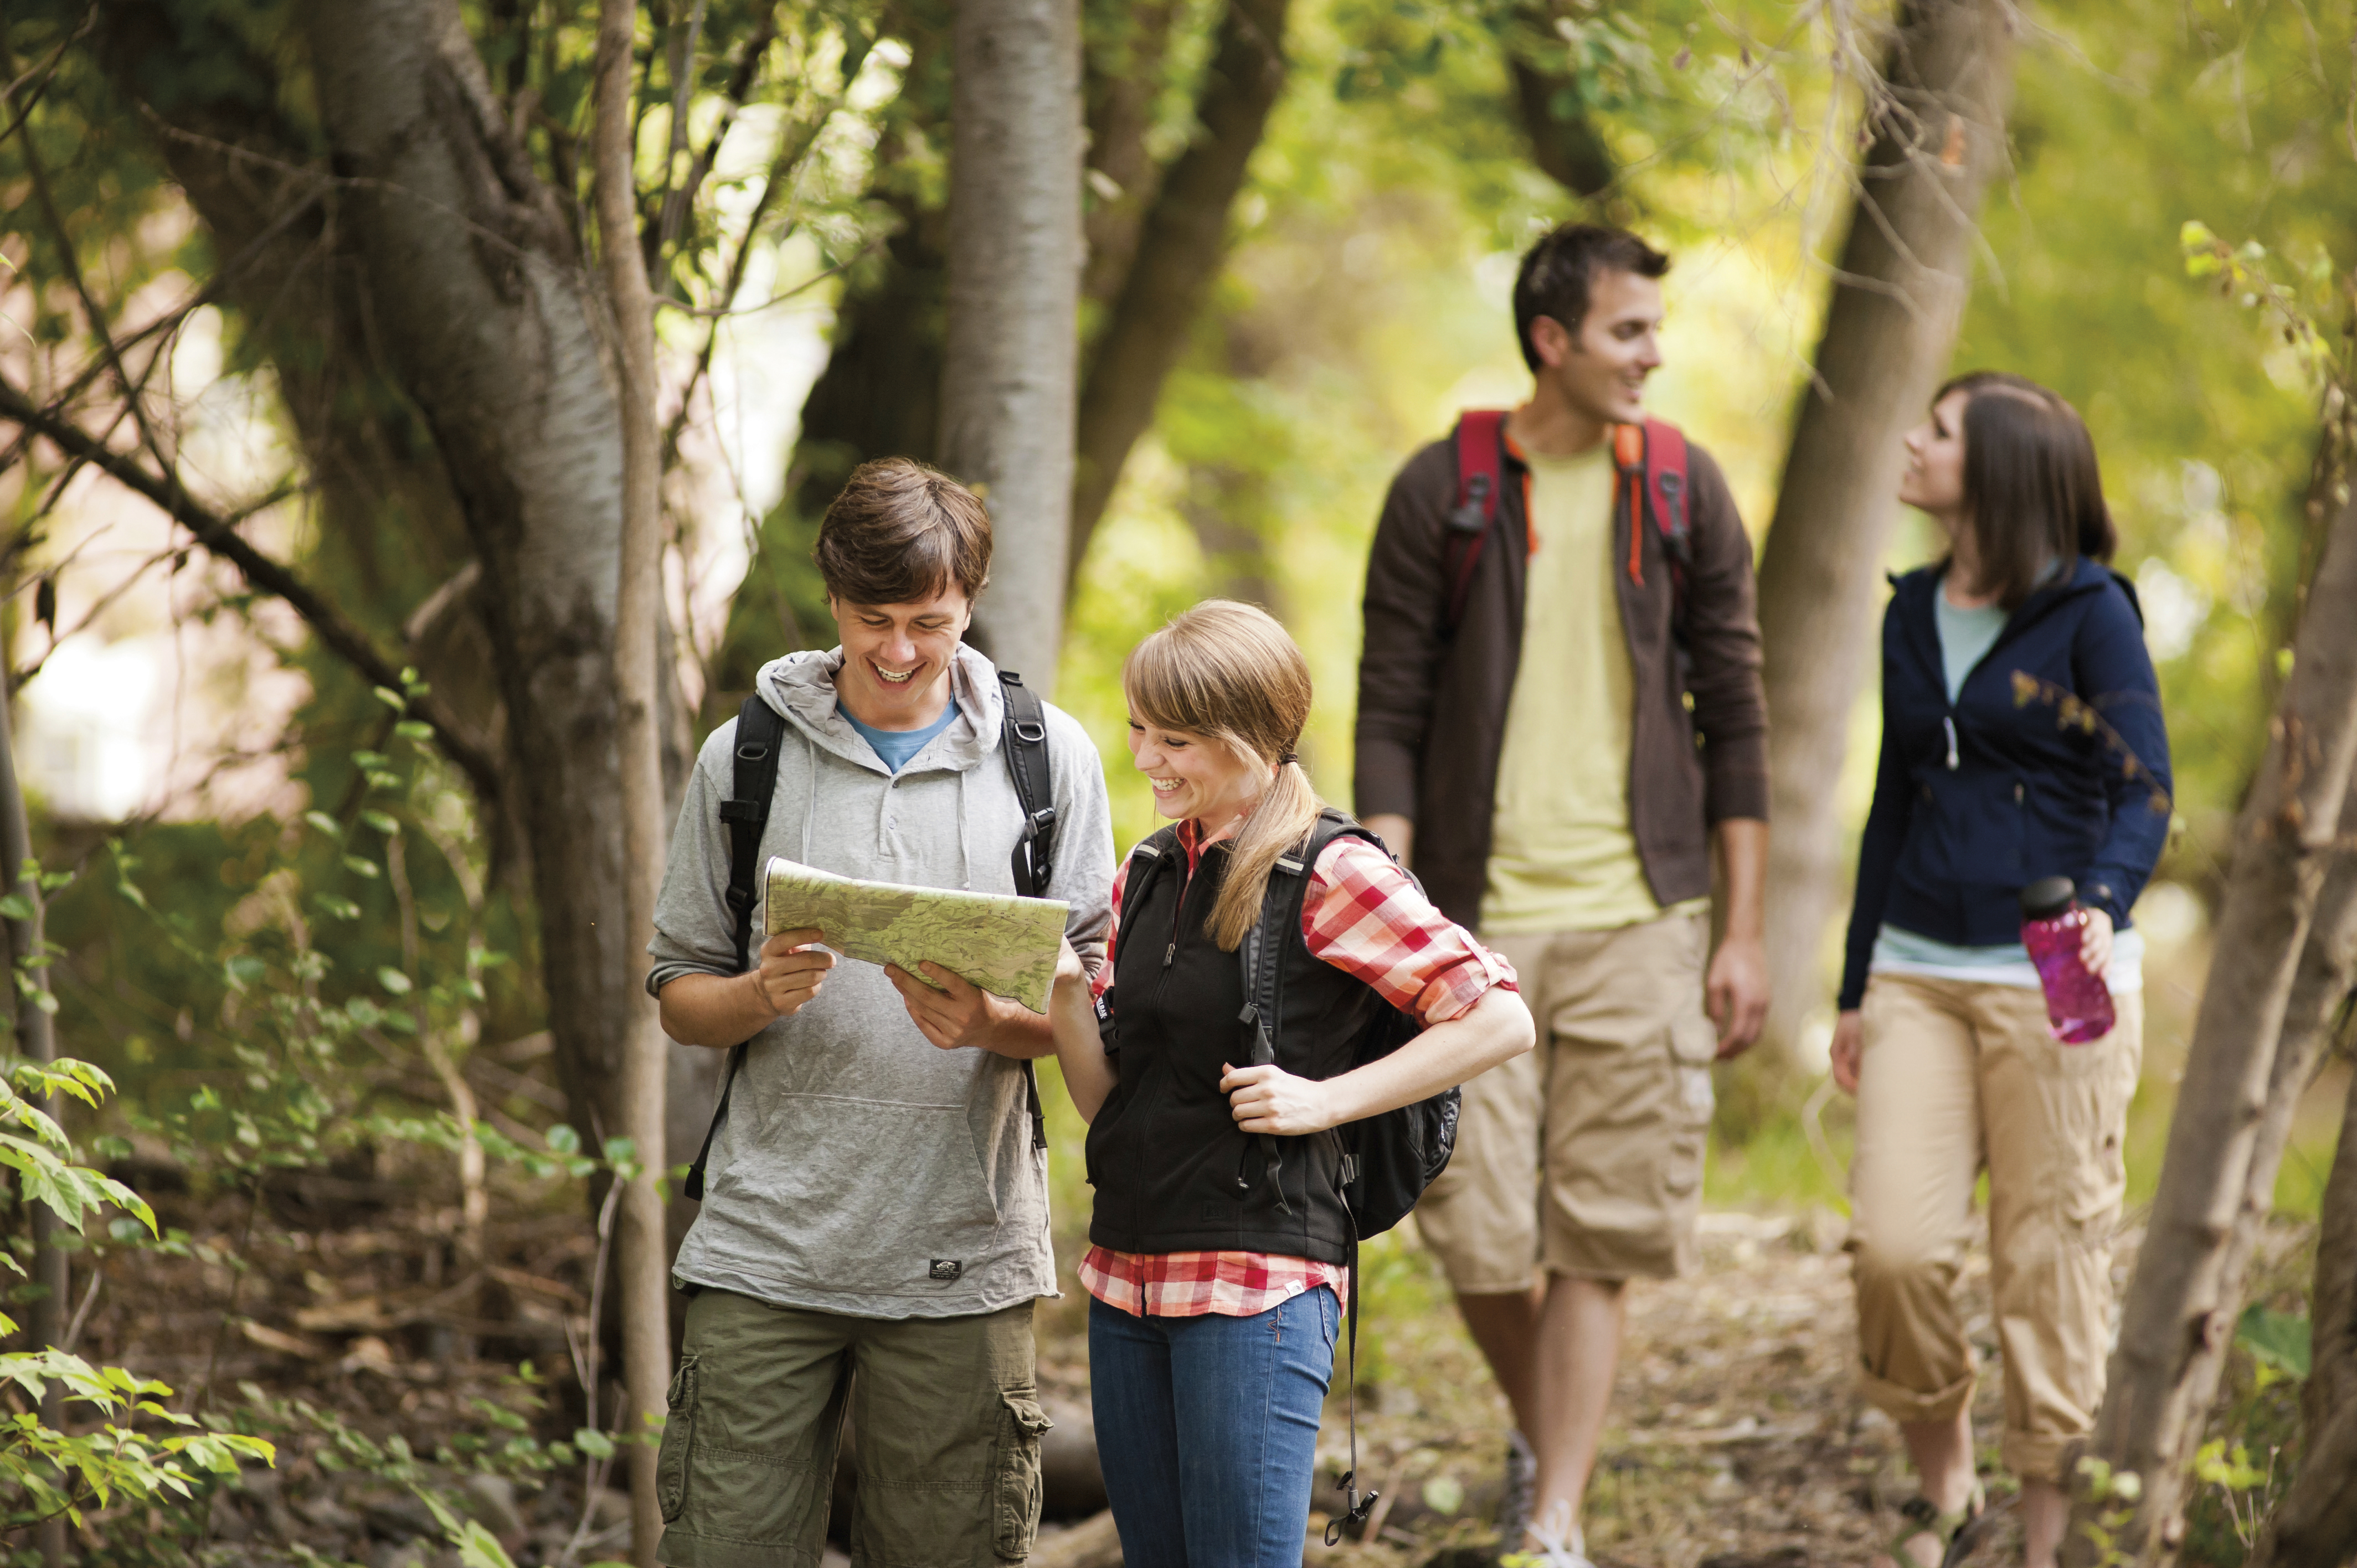 Two couples go hiking together on a group date.